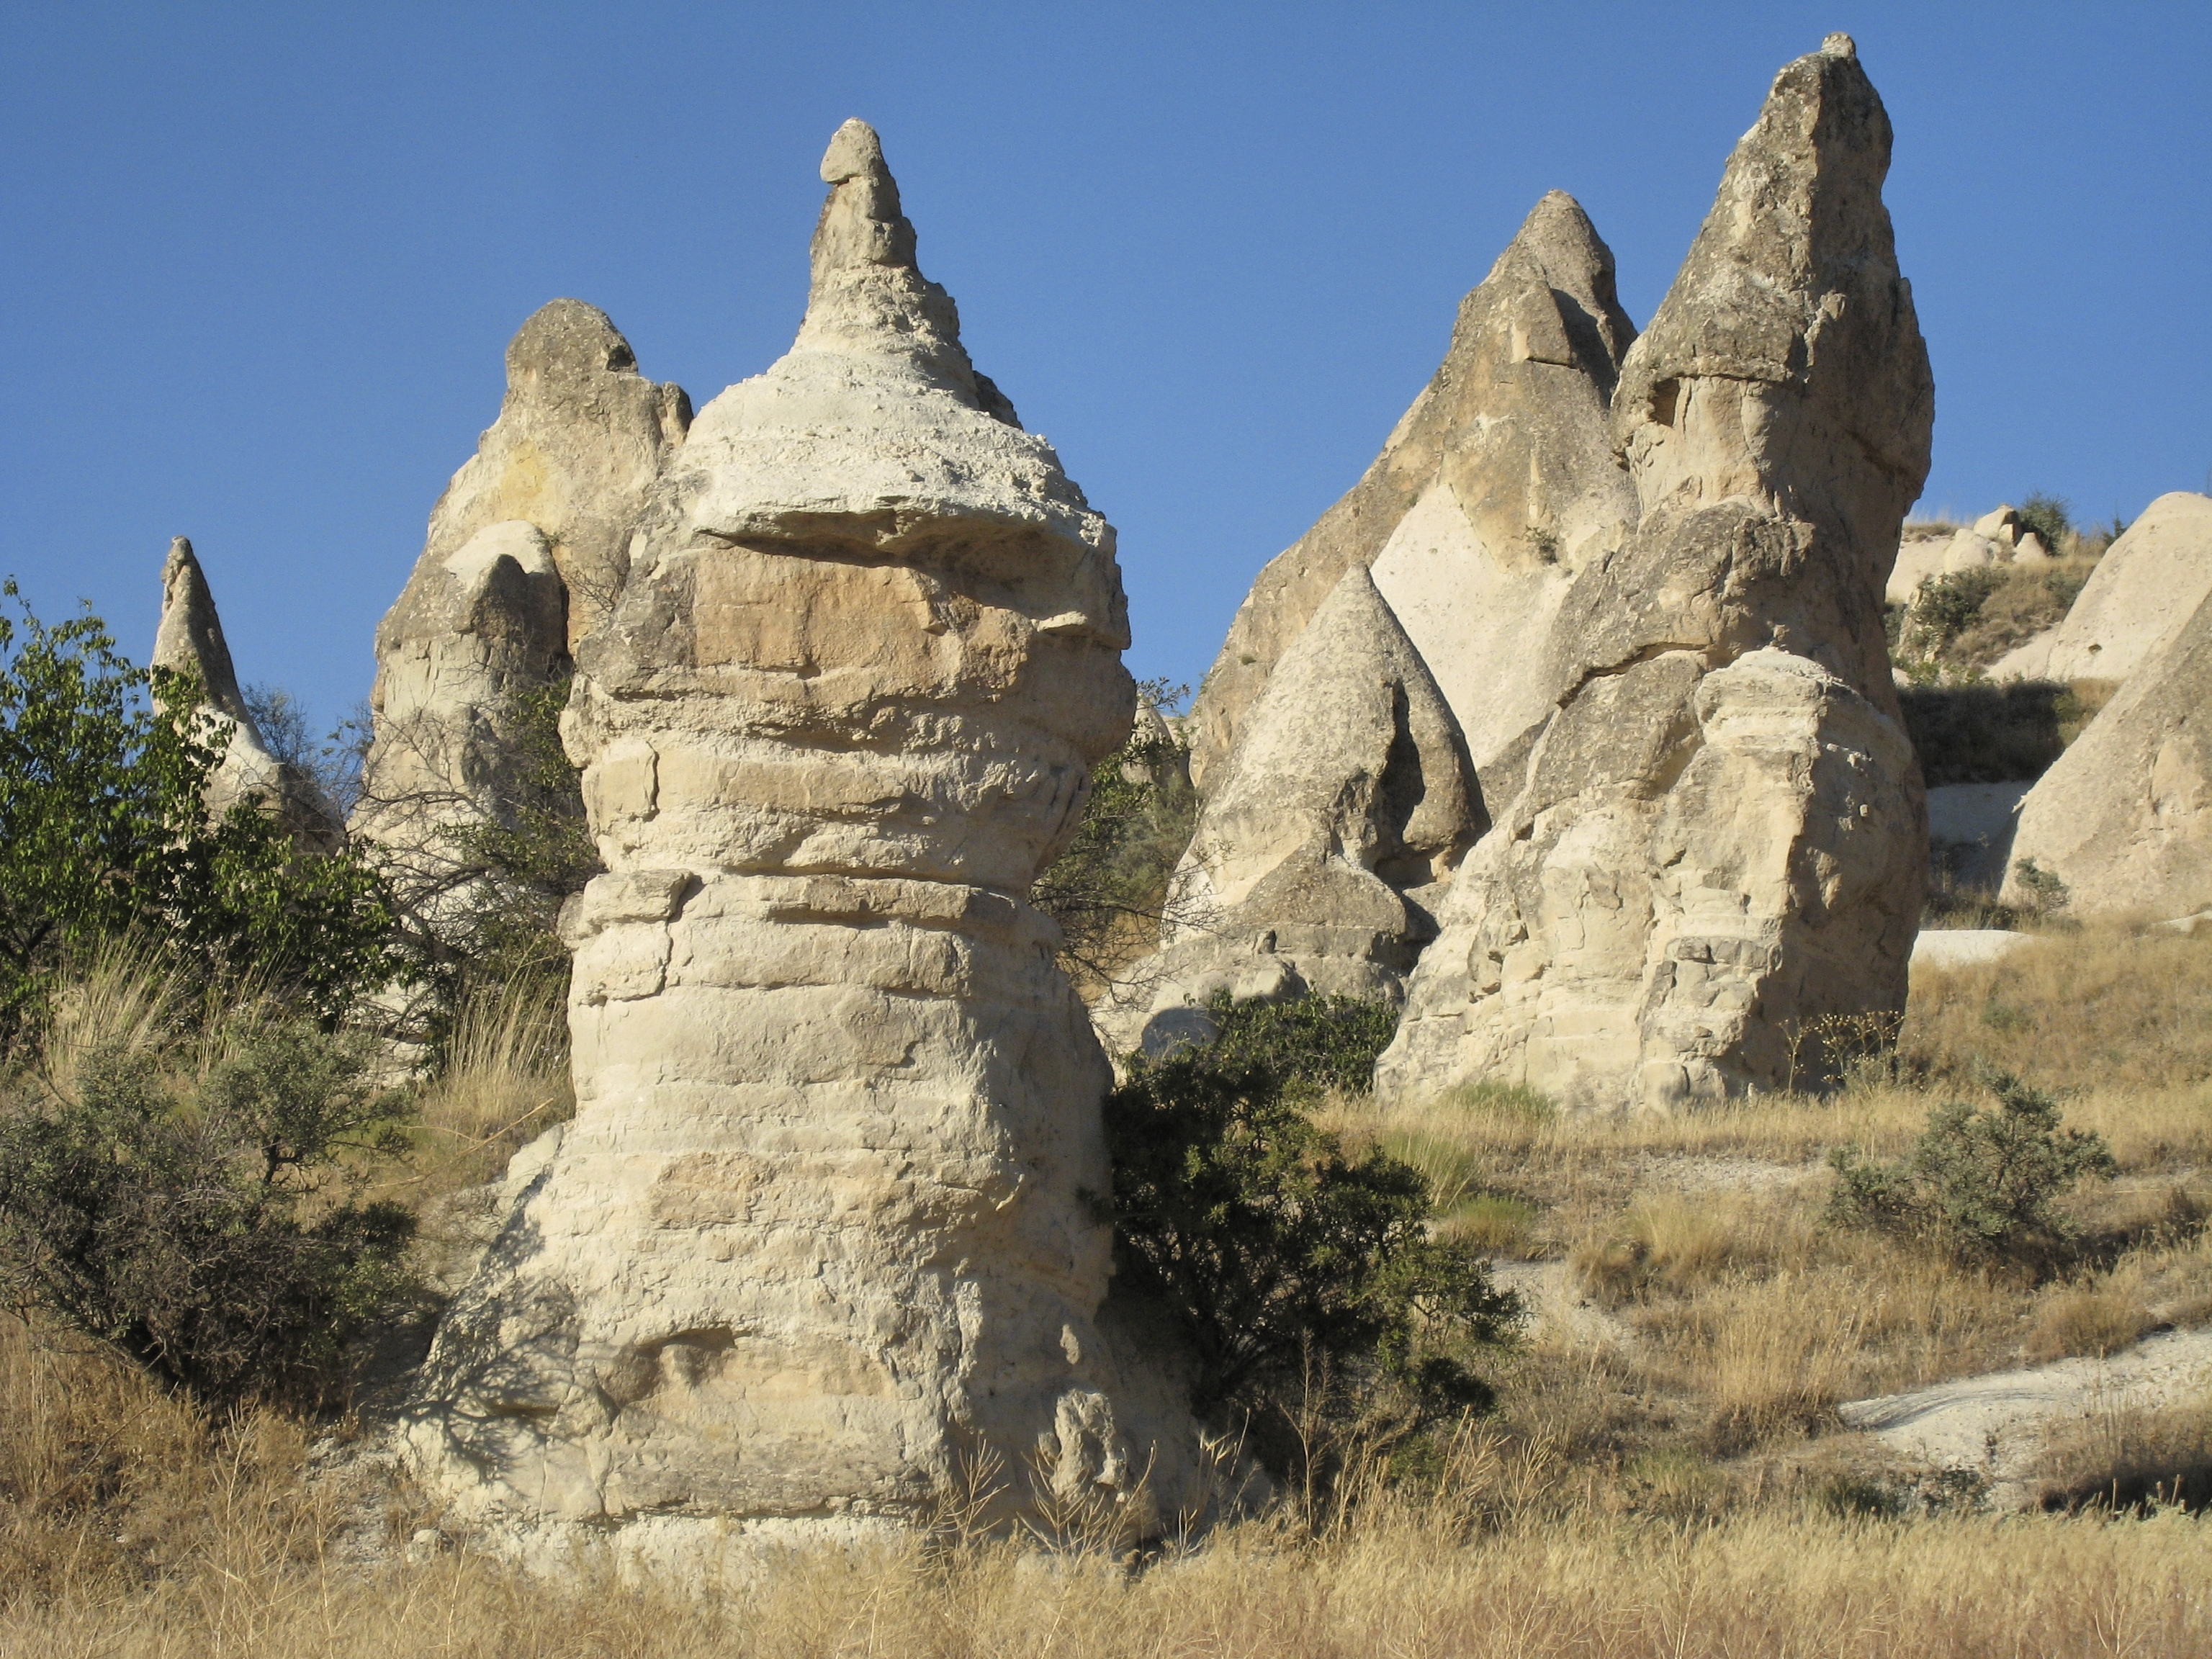 Fairy chimney rock formations, Goreme, Cappadocia Turkey 6.jpg - Goreme, Cappadocia, Turkey